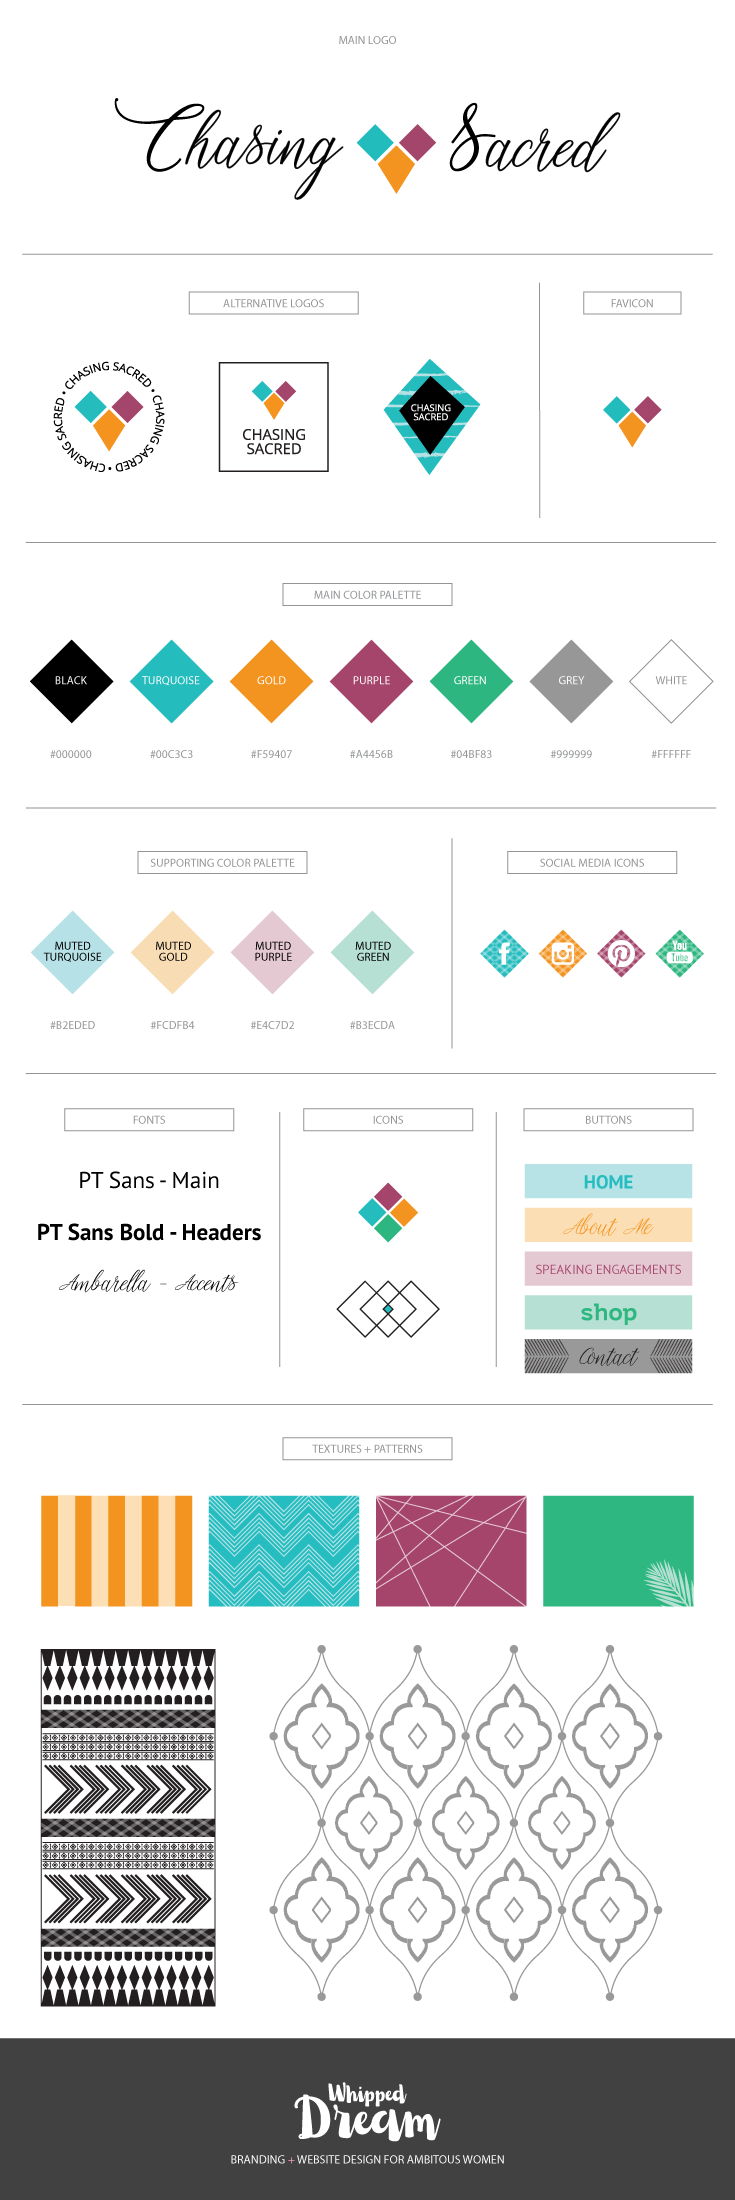 Chasing Sacred Branding Board | Designed by Whipped Dream